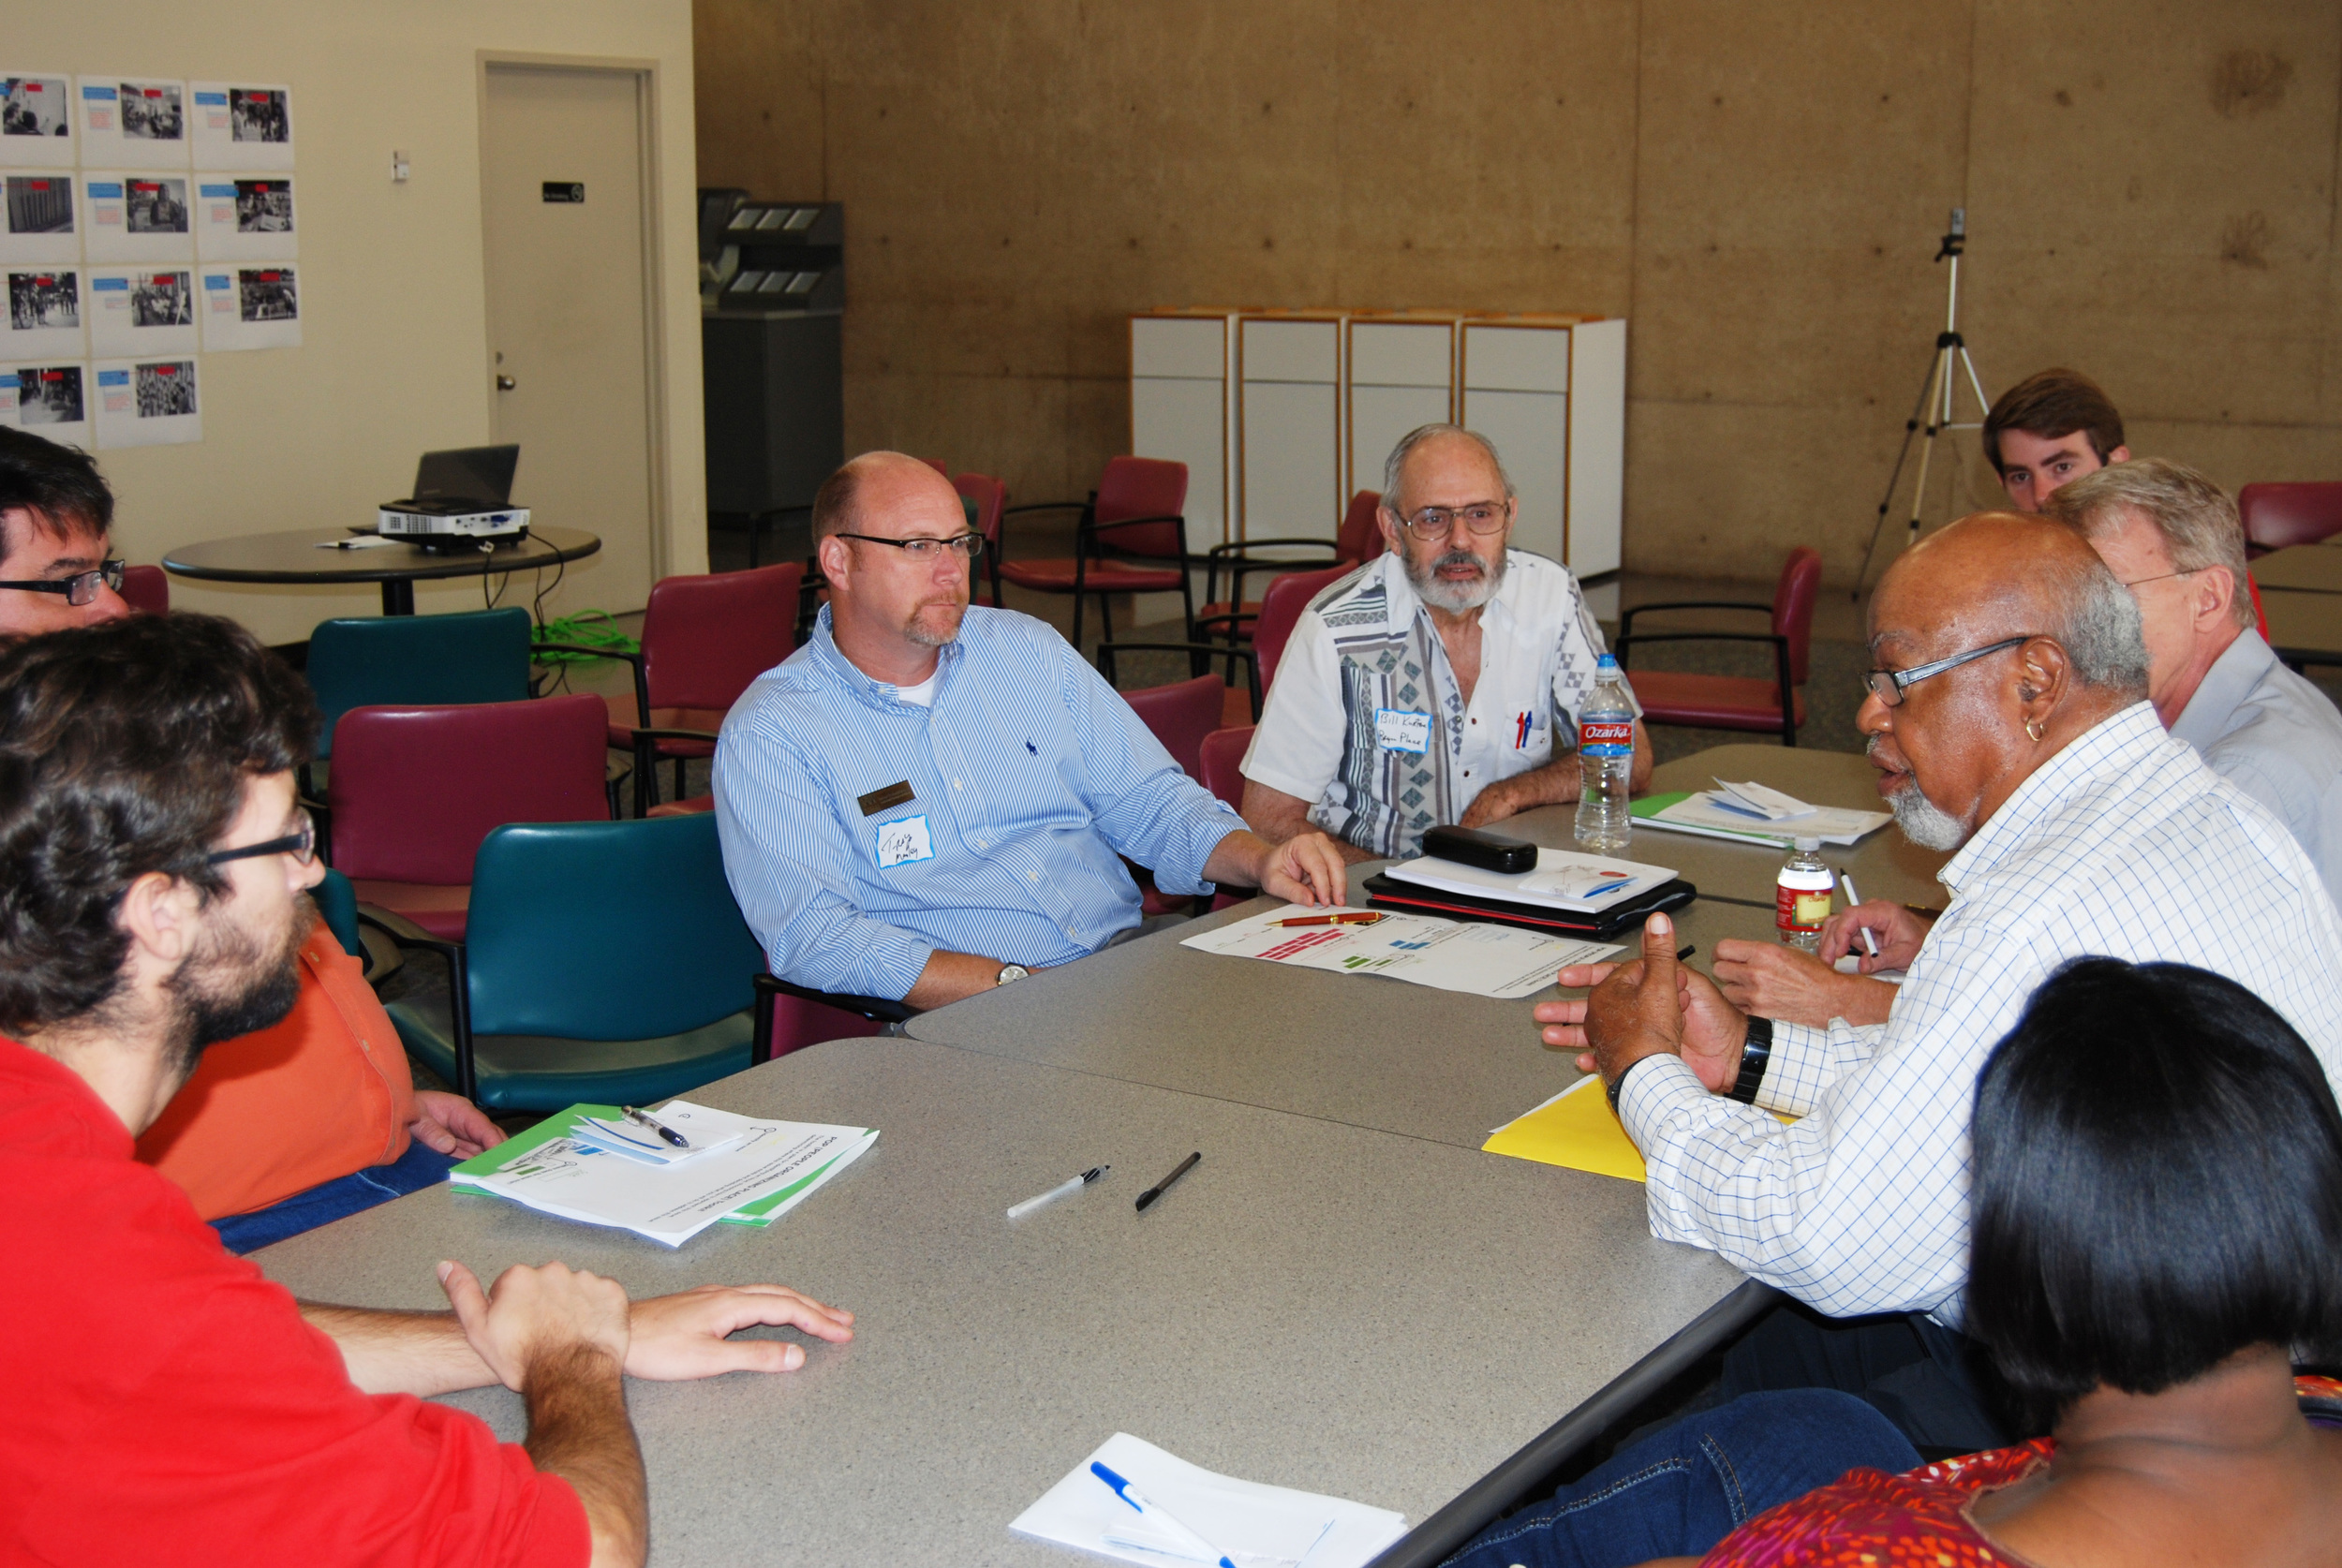 Participants dug deeper into the Toolkit during group discussions.